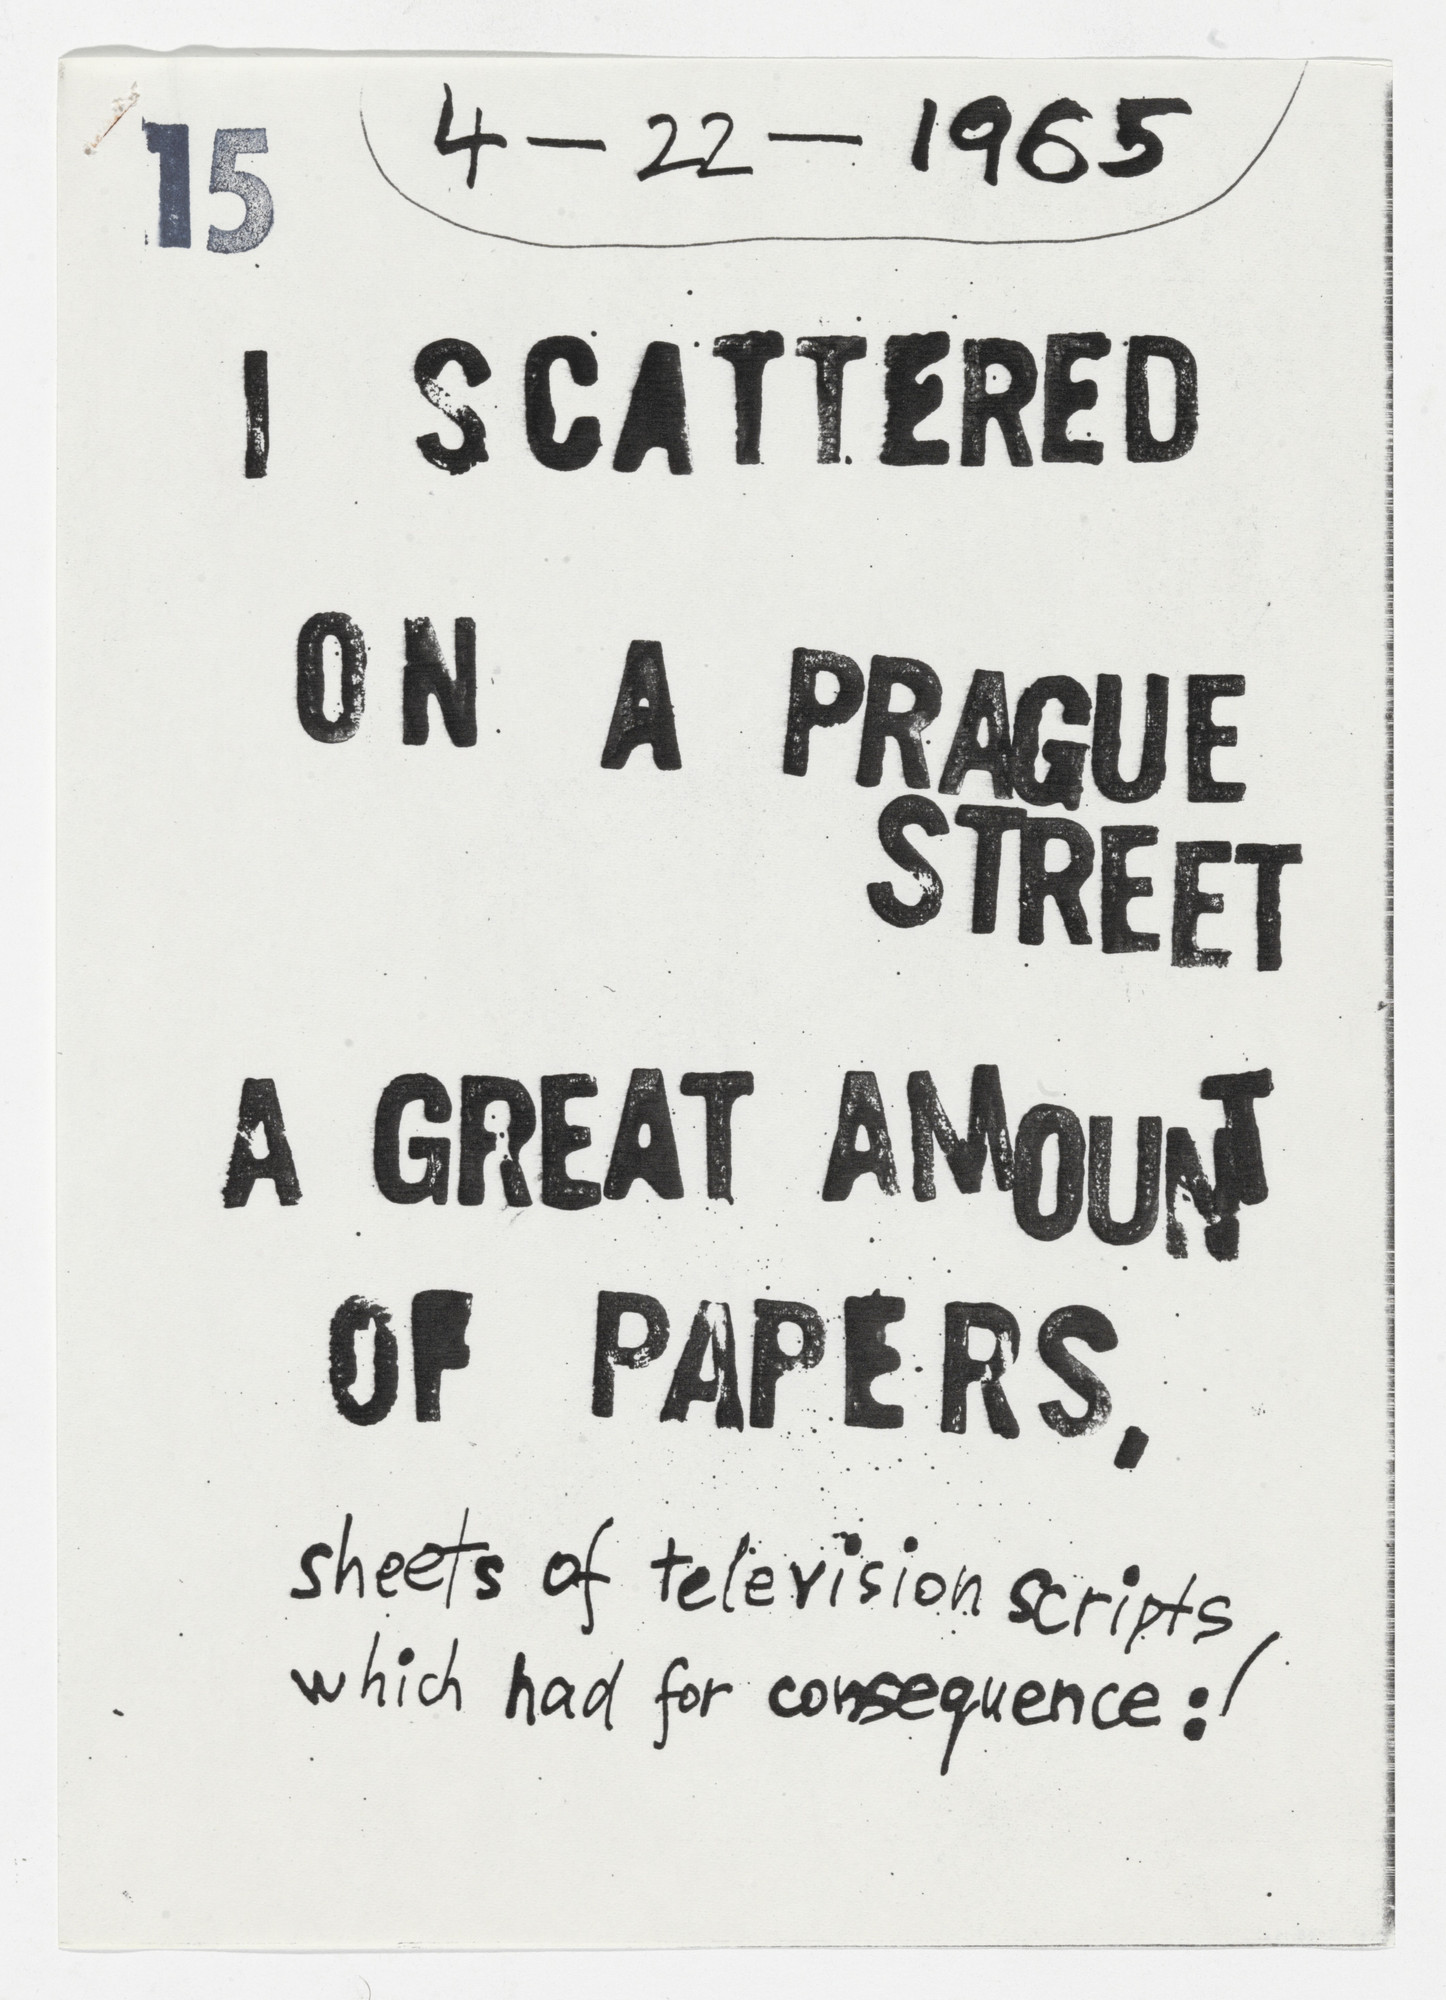 Milan Knížák. I Scattered on a Prague Street a Great Amount of Papers from Performance Files. 1965